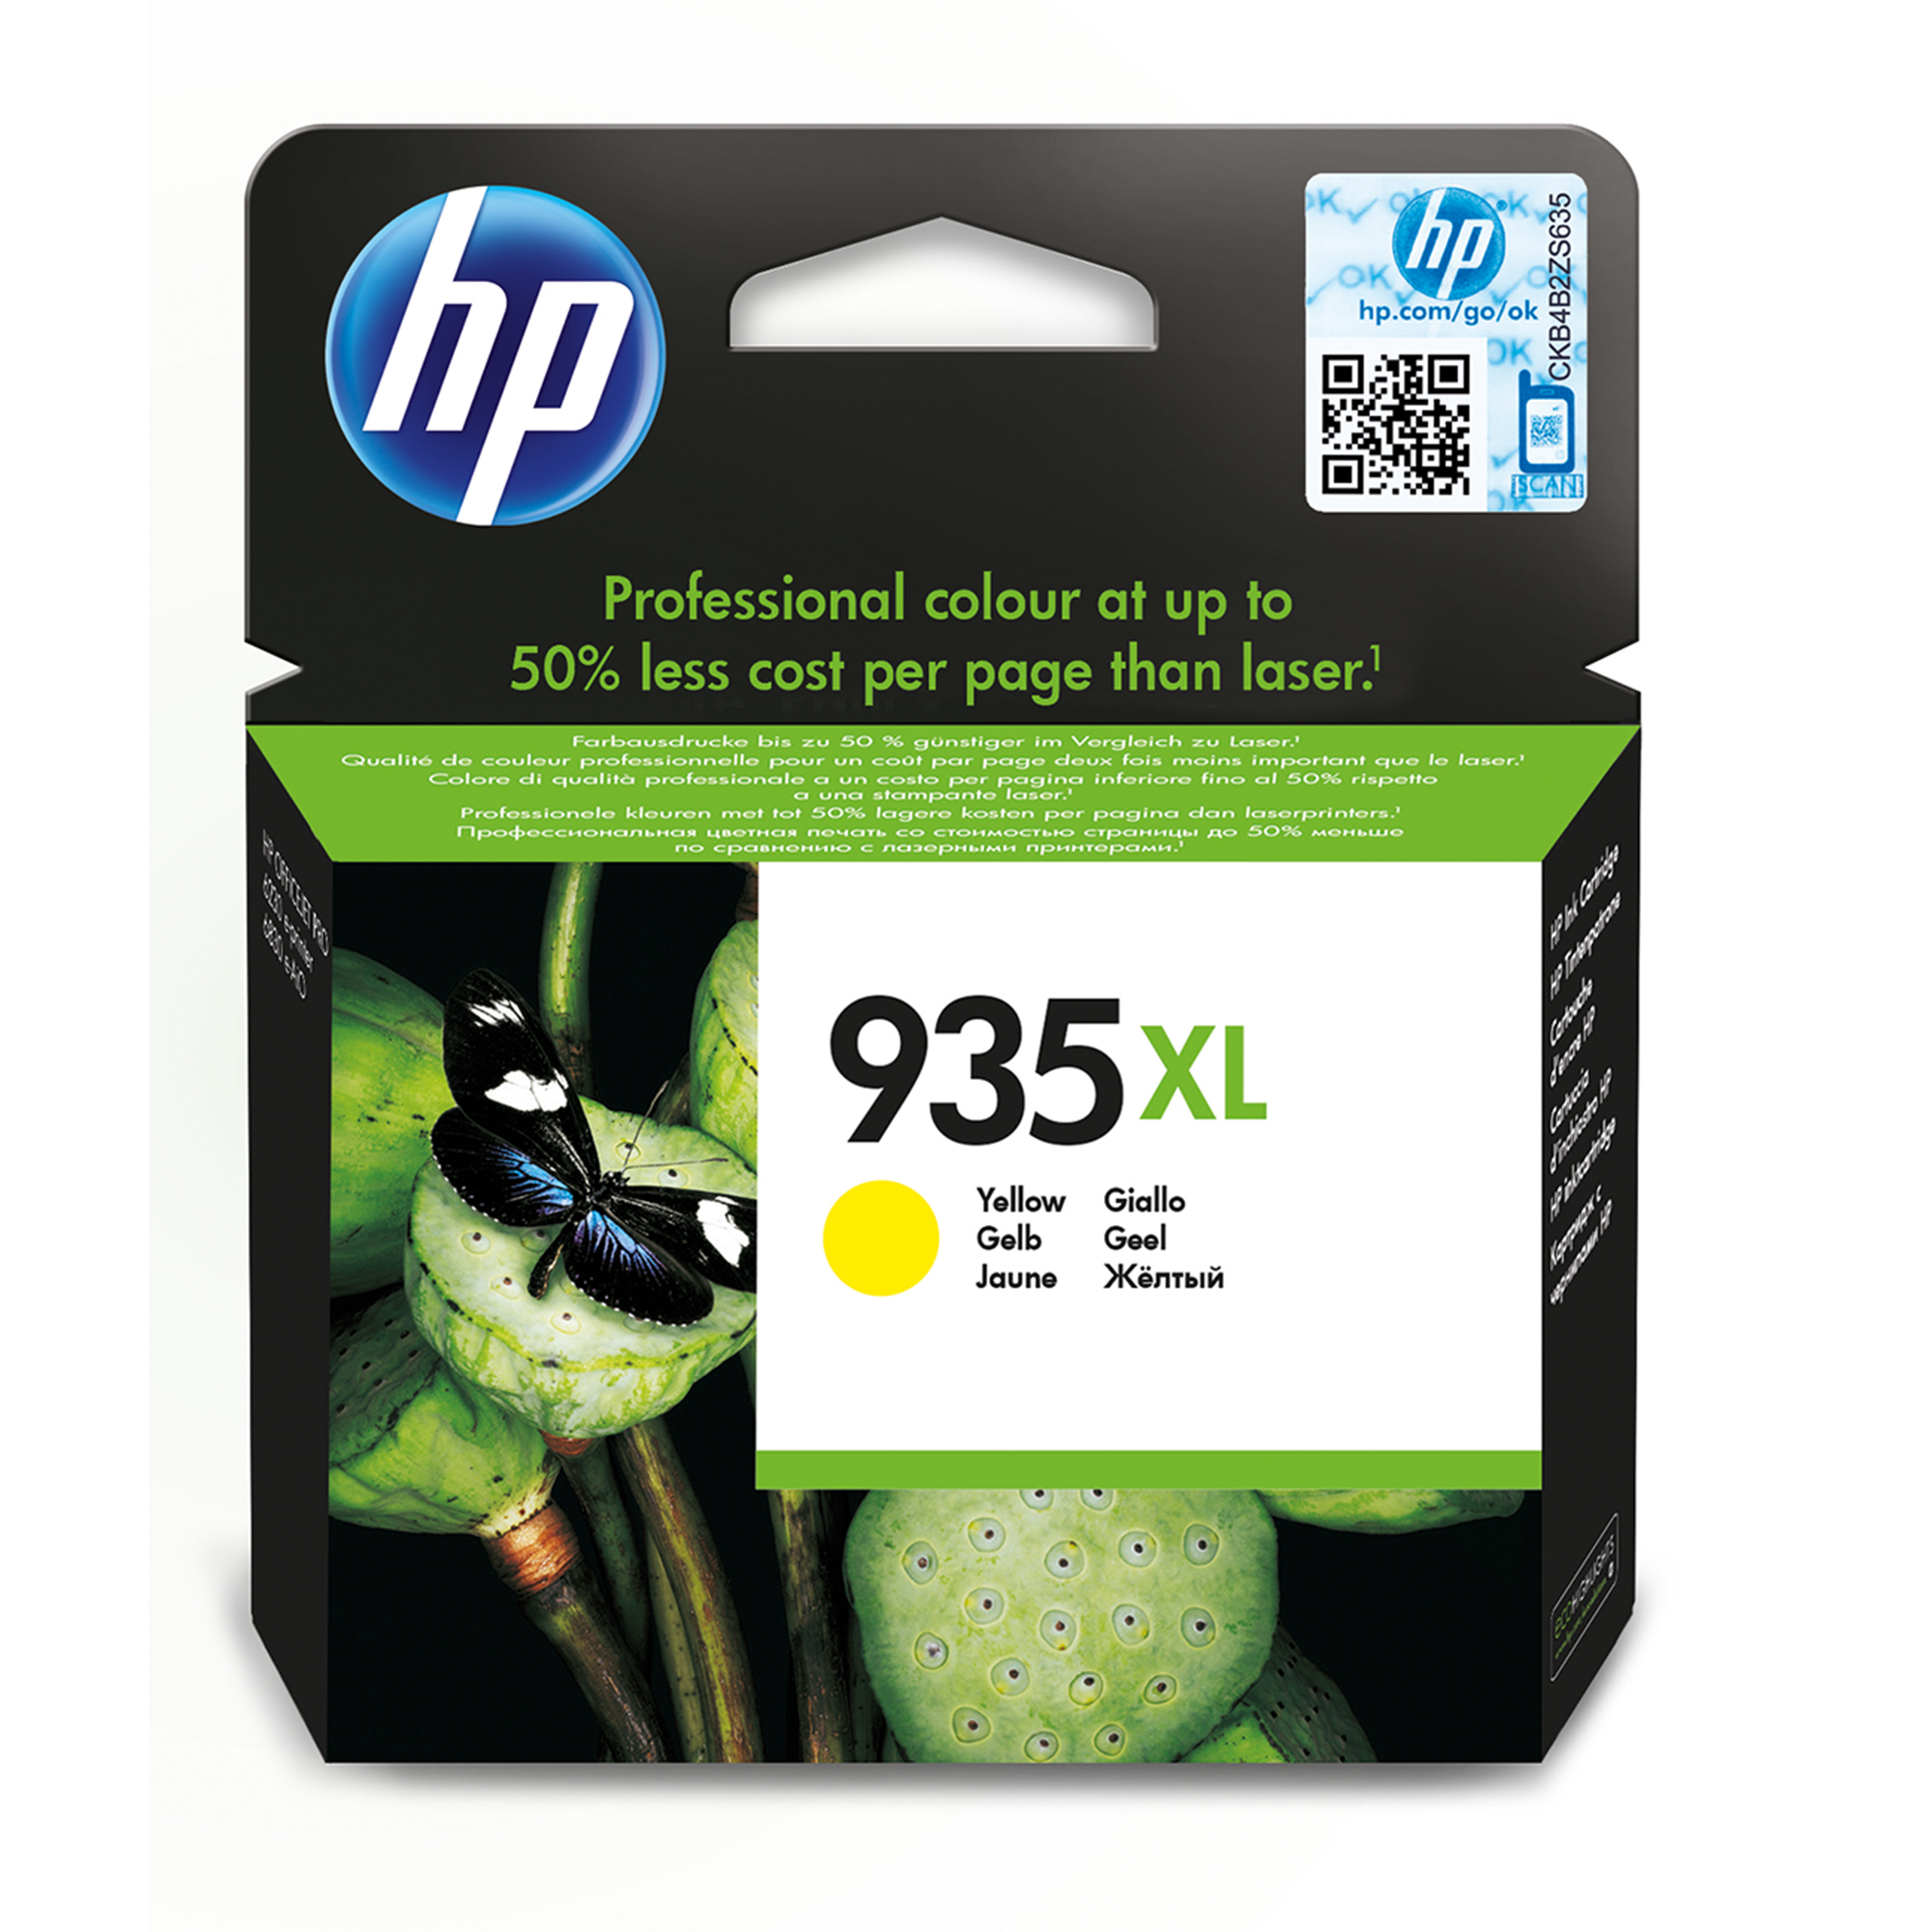 Hpc2p26ae      Hp 935xl Yellow Ink Cartridge  825 Pages                                                    - UF01